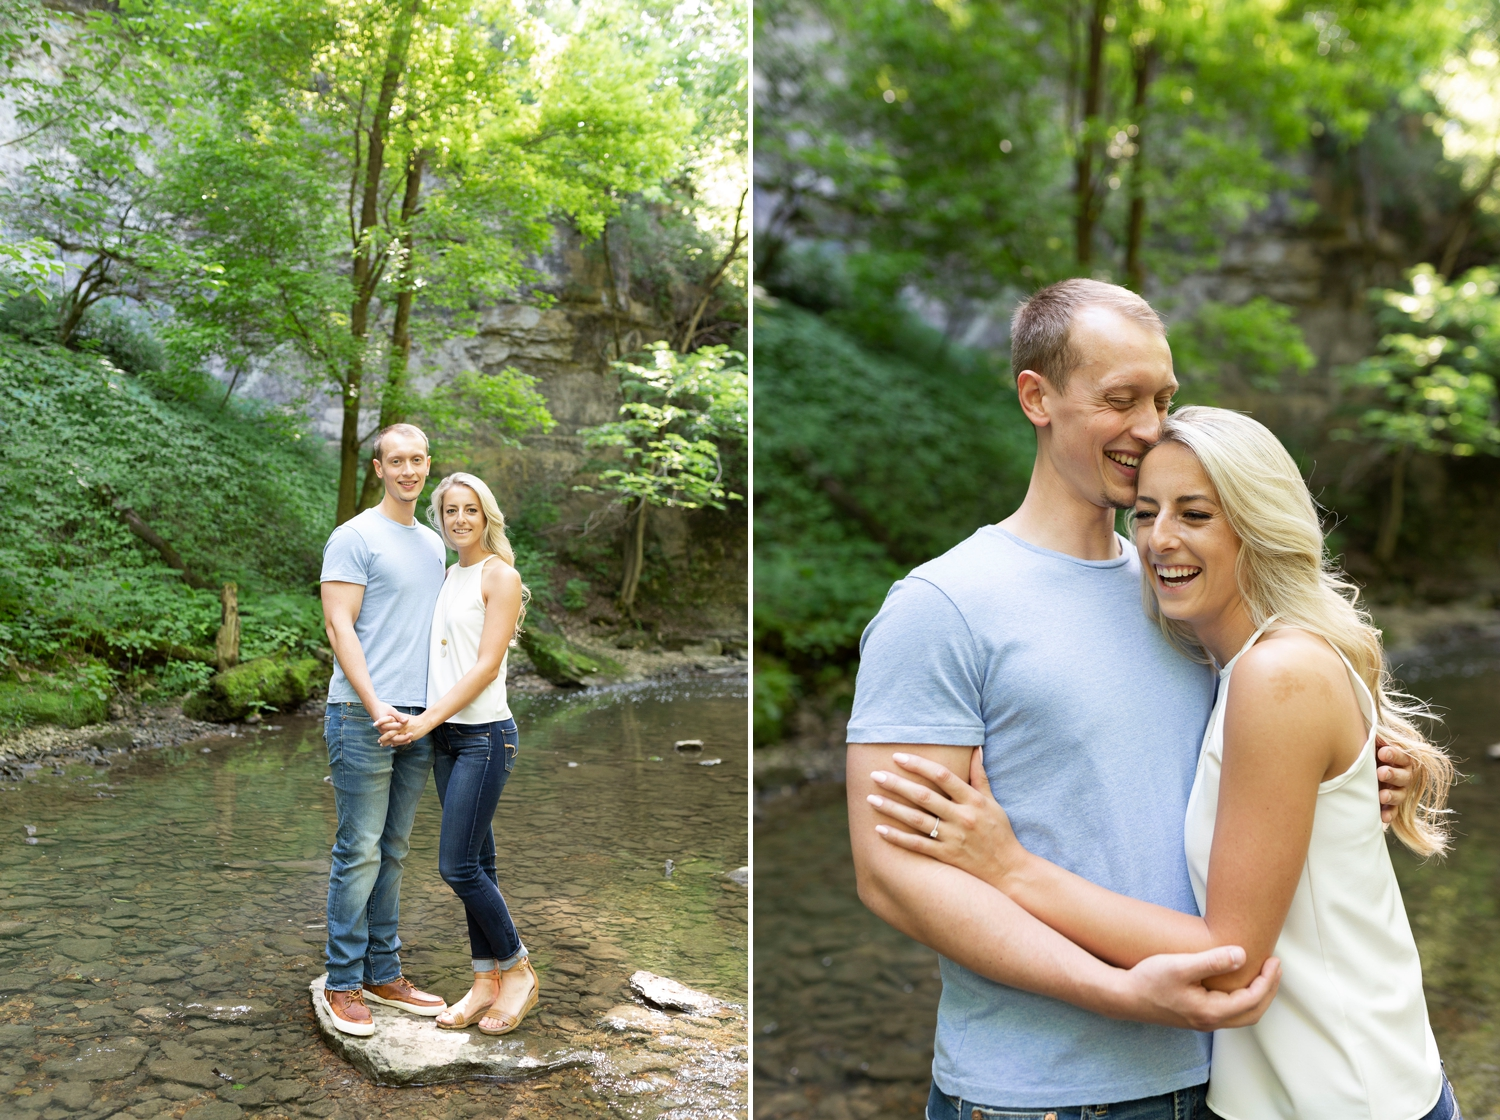 Creek engagement photos, Ohio engagement photos, Dublin Ohio, Dublin engagement session, Columbus engagement session, Columbus engagement photos, outdoor engagement photos, Ohio wedding photographer, Columbus wedding photographer, engagement photo ideas, summer engagement photos, engagement outfit ideas, engagement photos, outdoor engagement photos, engagement photo ideas, Wright State University, college sweethearts, adventure engagement photos